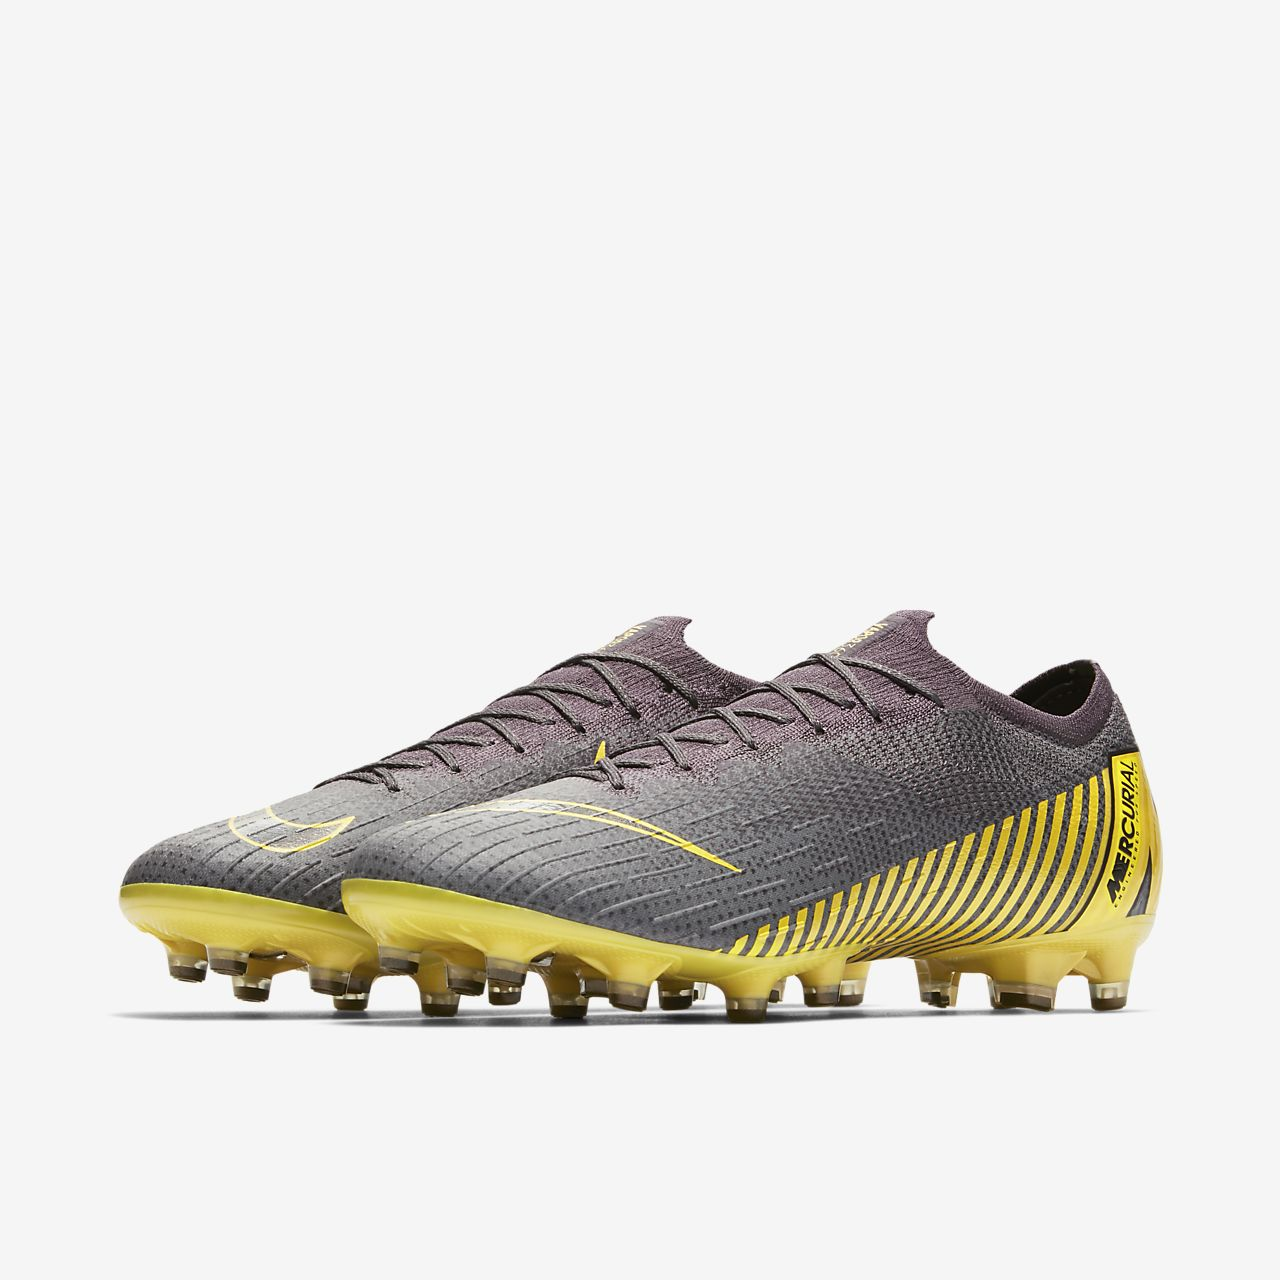 on sale 09138 e53ba ... Nike Mercurial Vapor 360 Elite AG-PRO Artificial-Grass Football Boot